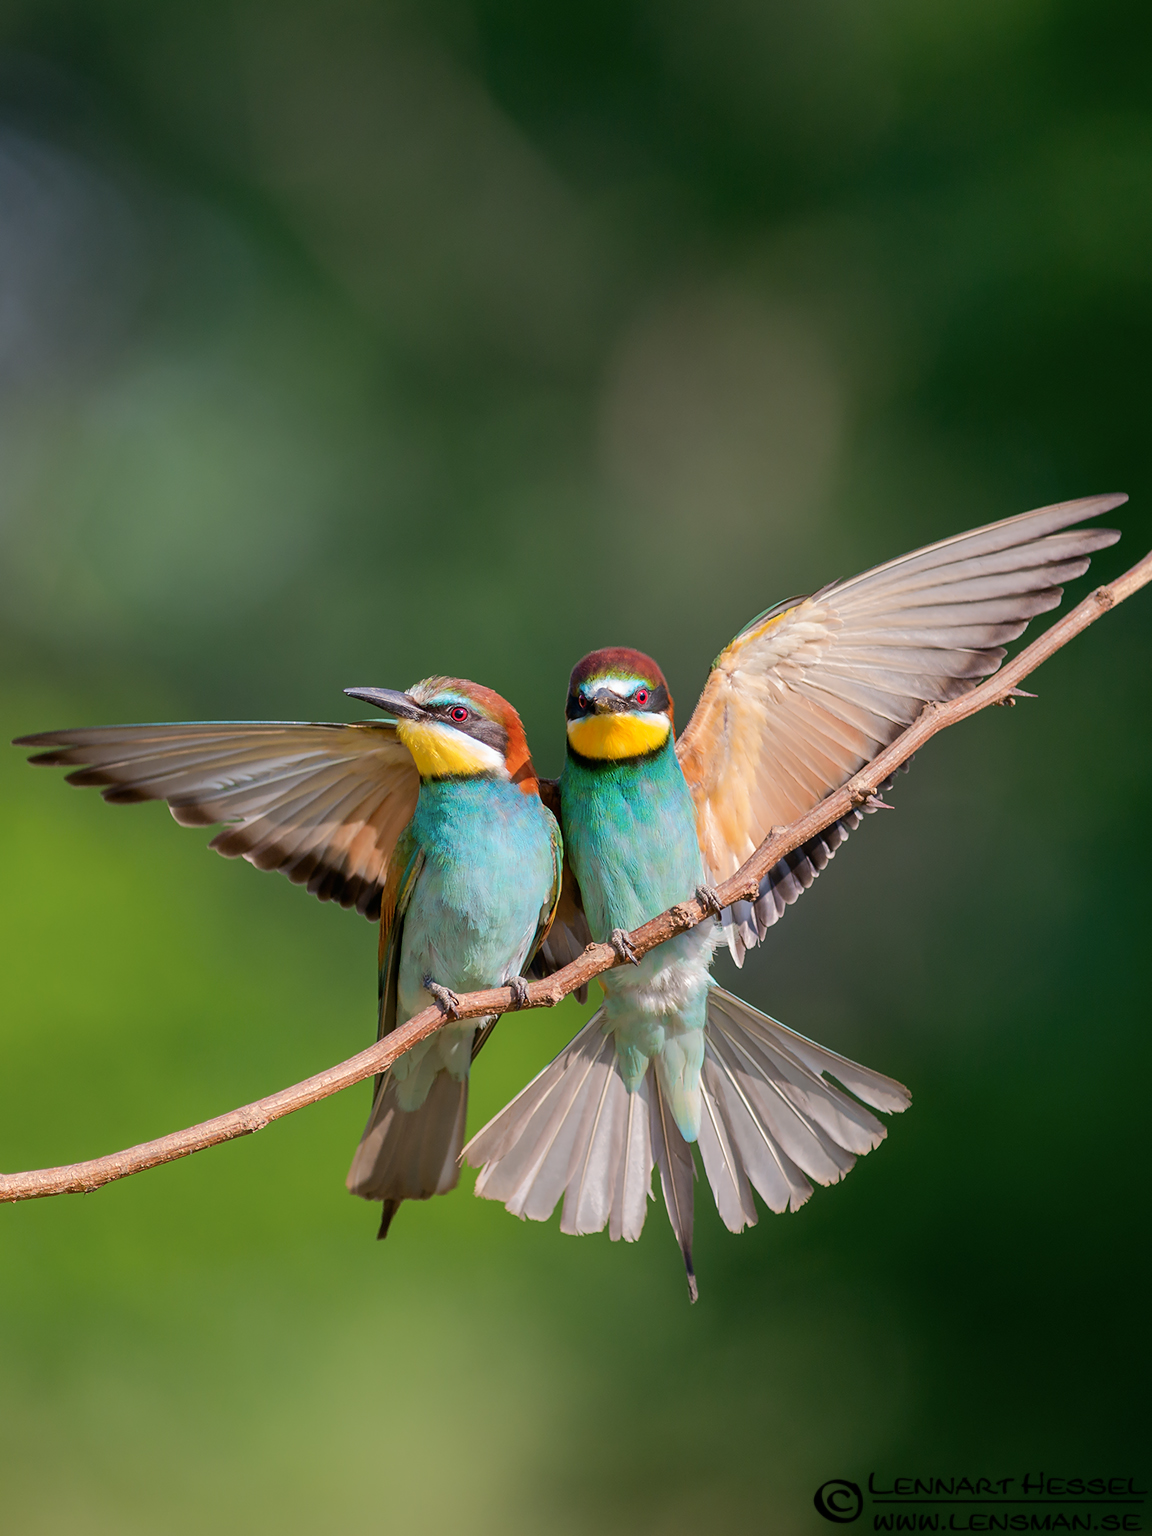 European Bee-eaters, cover photo from Hungary winter